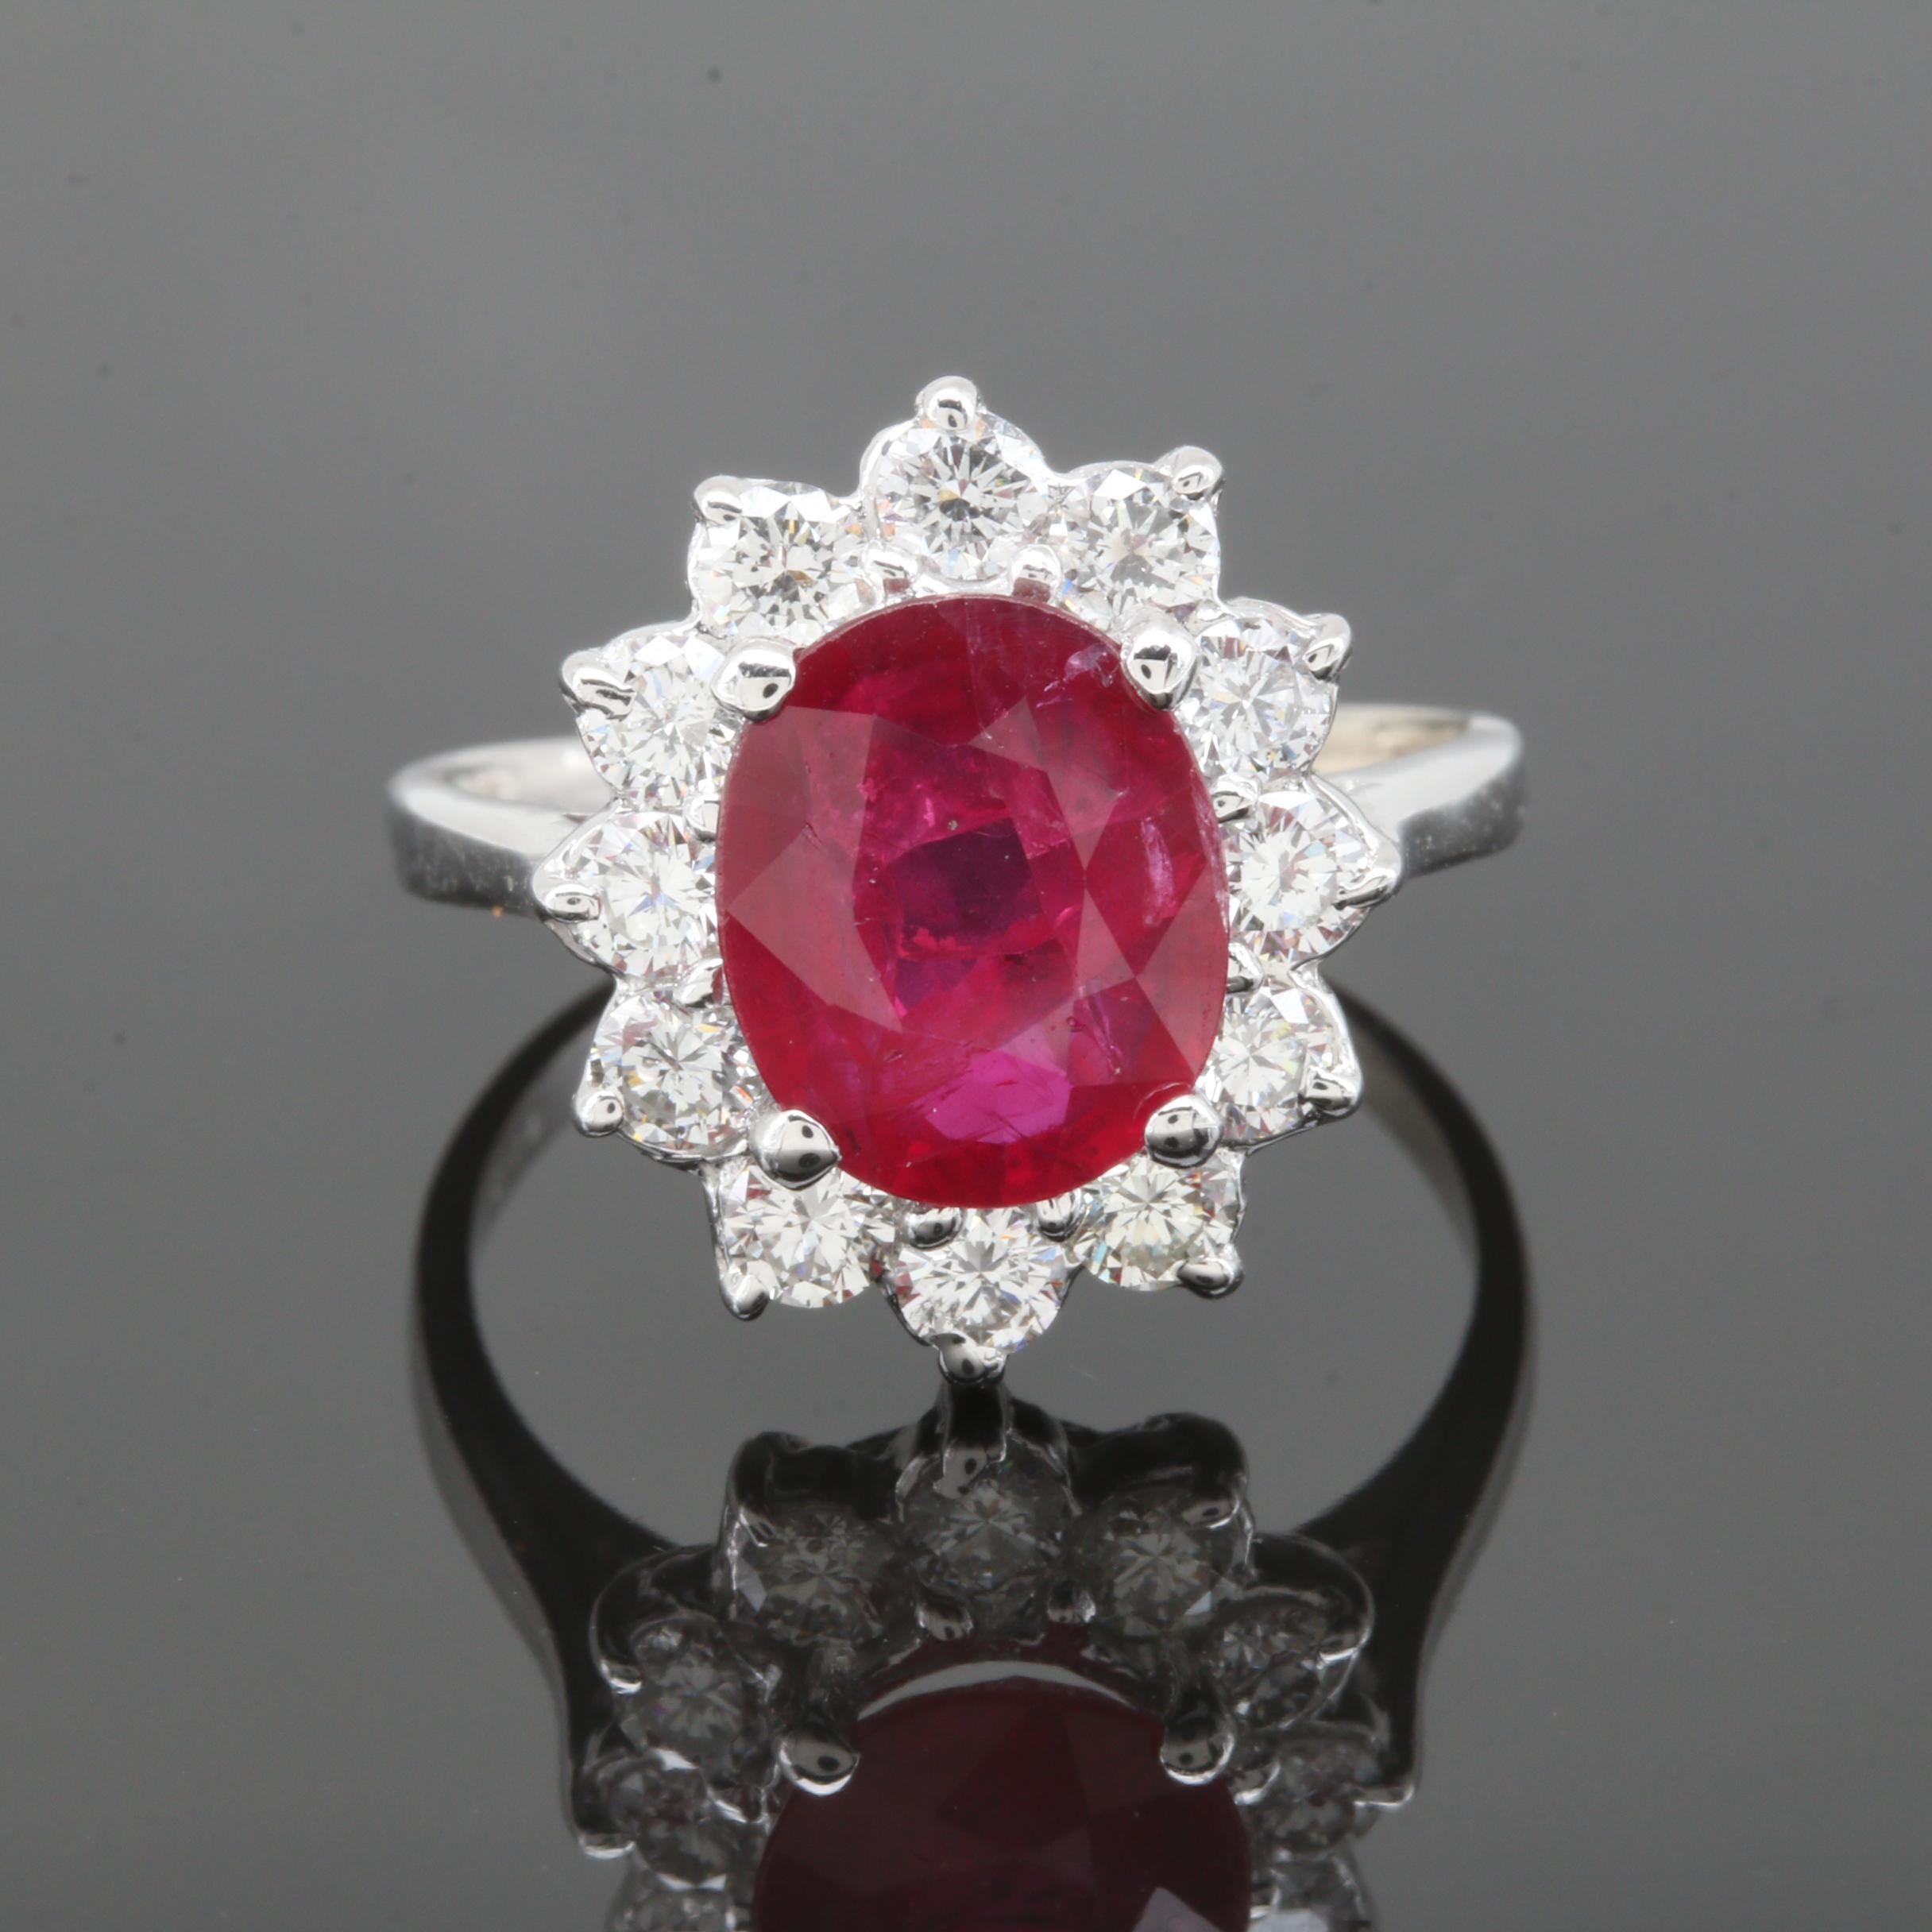 14K White Gold 2.14 CT Ruby and 0.78 CTW Diamond Ring